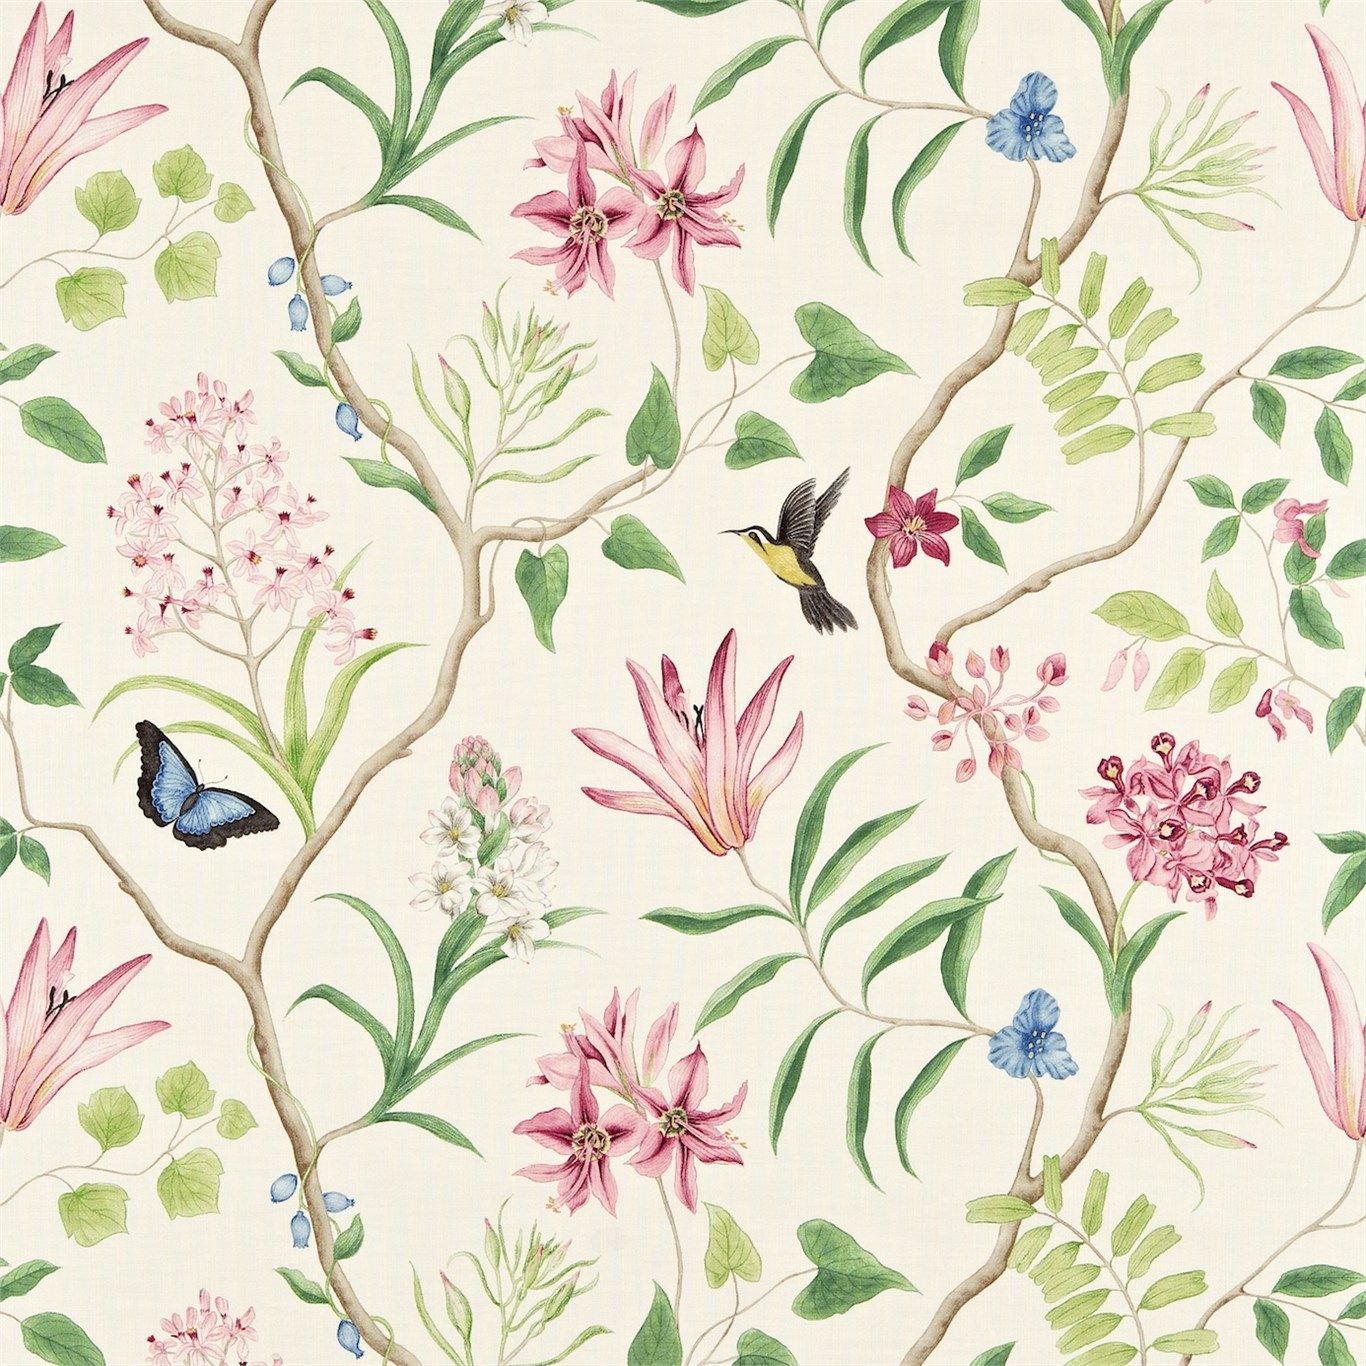 Products harlequin designer fabrics and wallpapers paradise - Sanderson Clementine Fabric Designer Fabrics And Wallpapers By Sanderson Harlequin Morris Osborne Little And Many